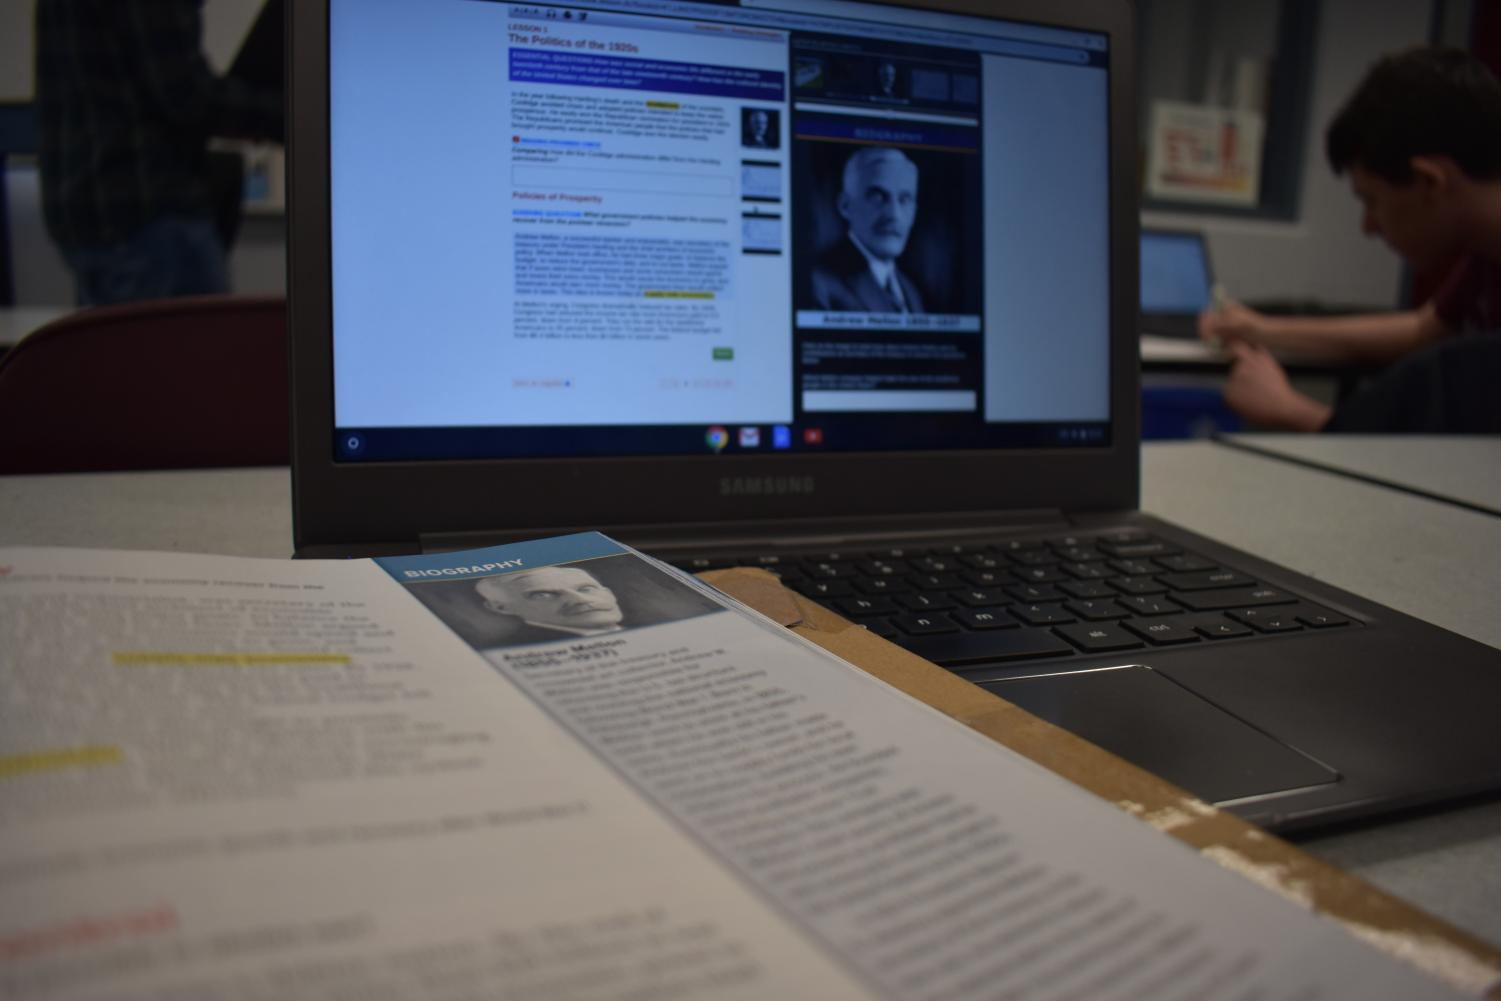 Sharyn O'Keefe's United States History II class has access to both online and physical textbooks for convenience and extra learning activities.